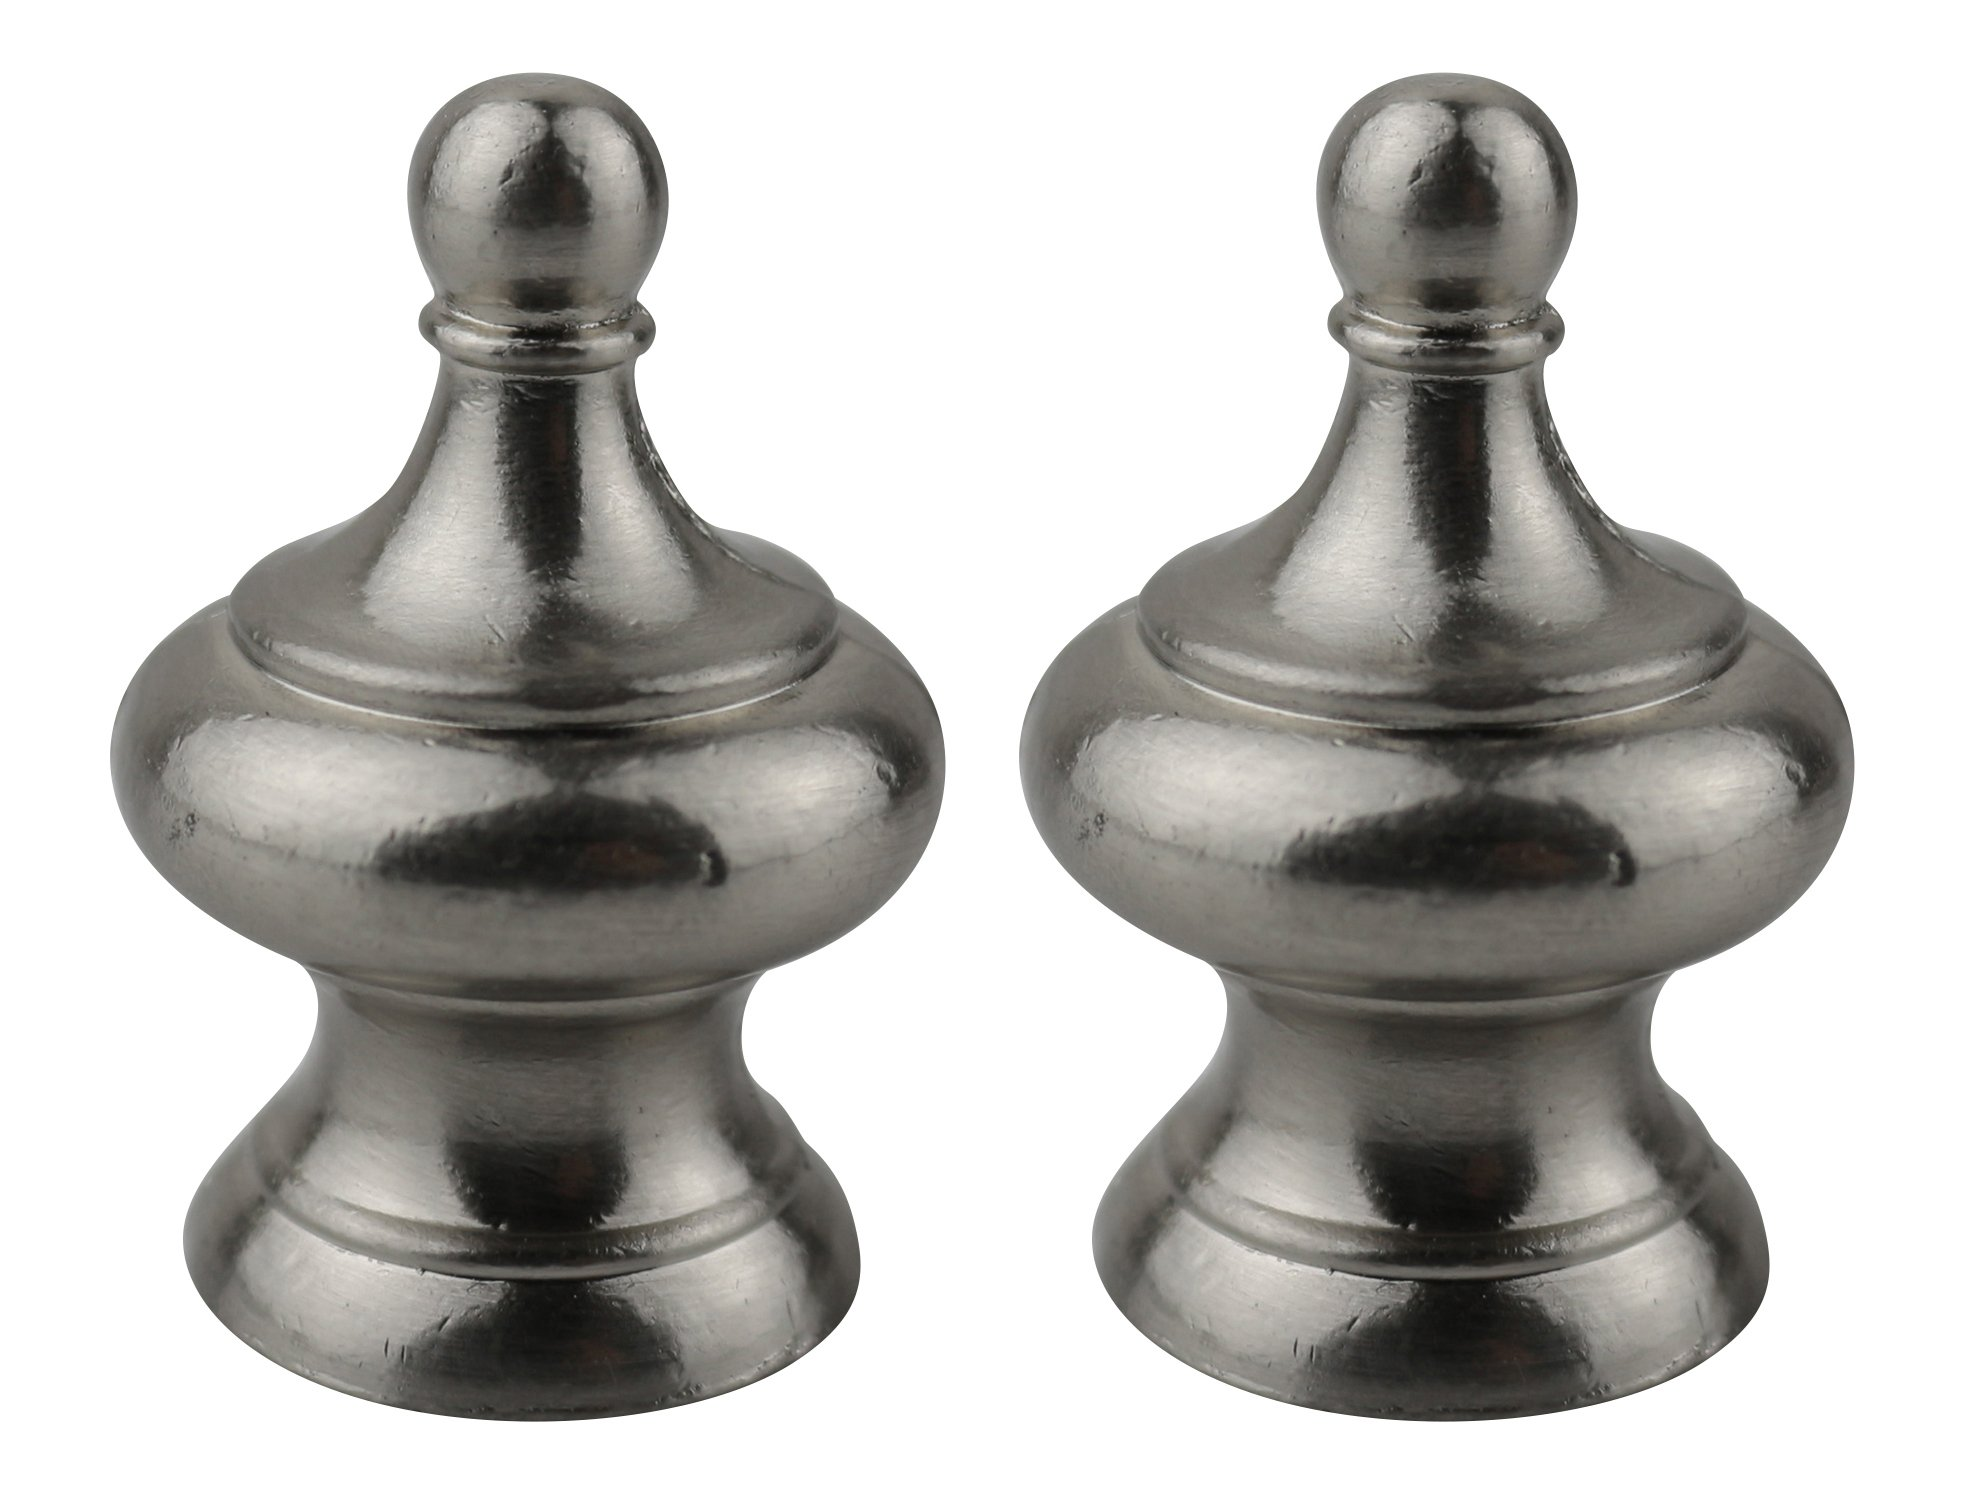 Urbanest Set of 2 Worsley Lamp Finial, 1 3/4-inch Tall, Brushed Nickel